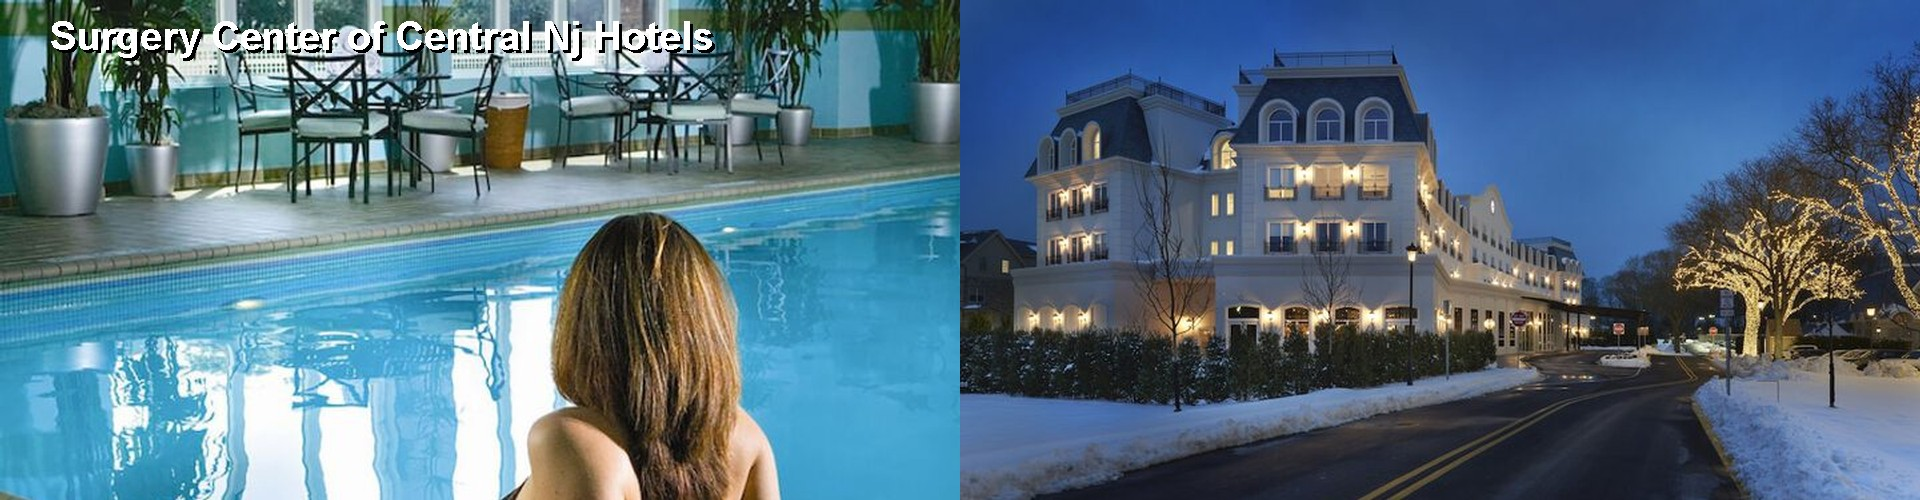 5 Best Hotels near Surgery Center of Central Nj